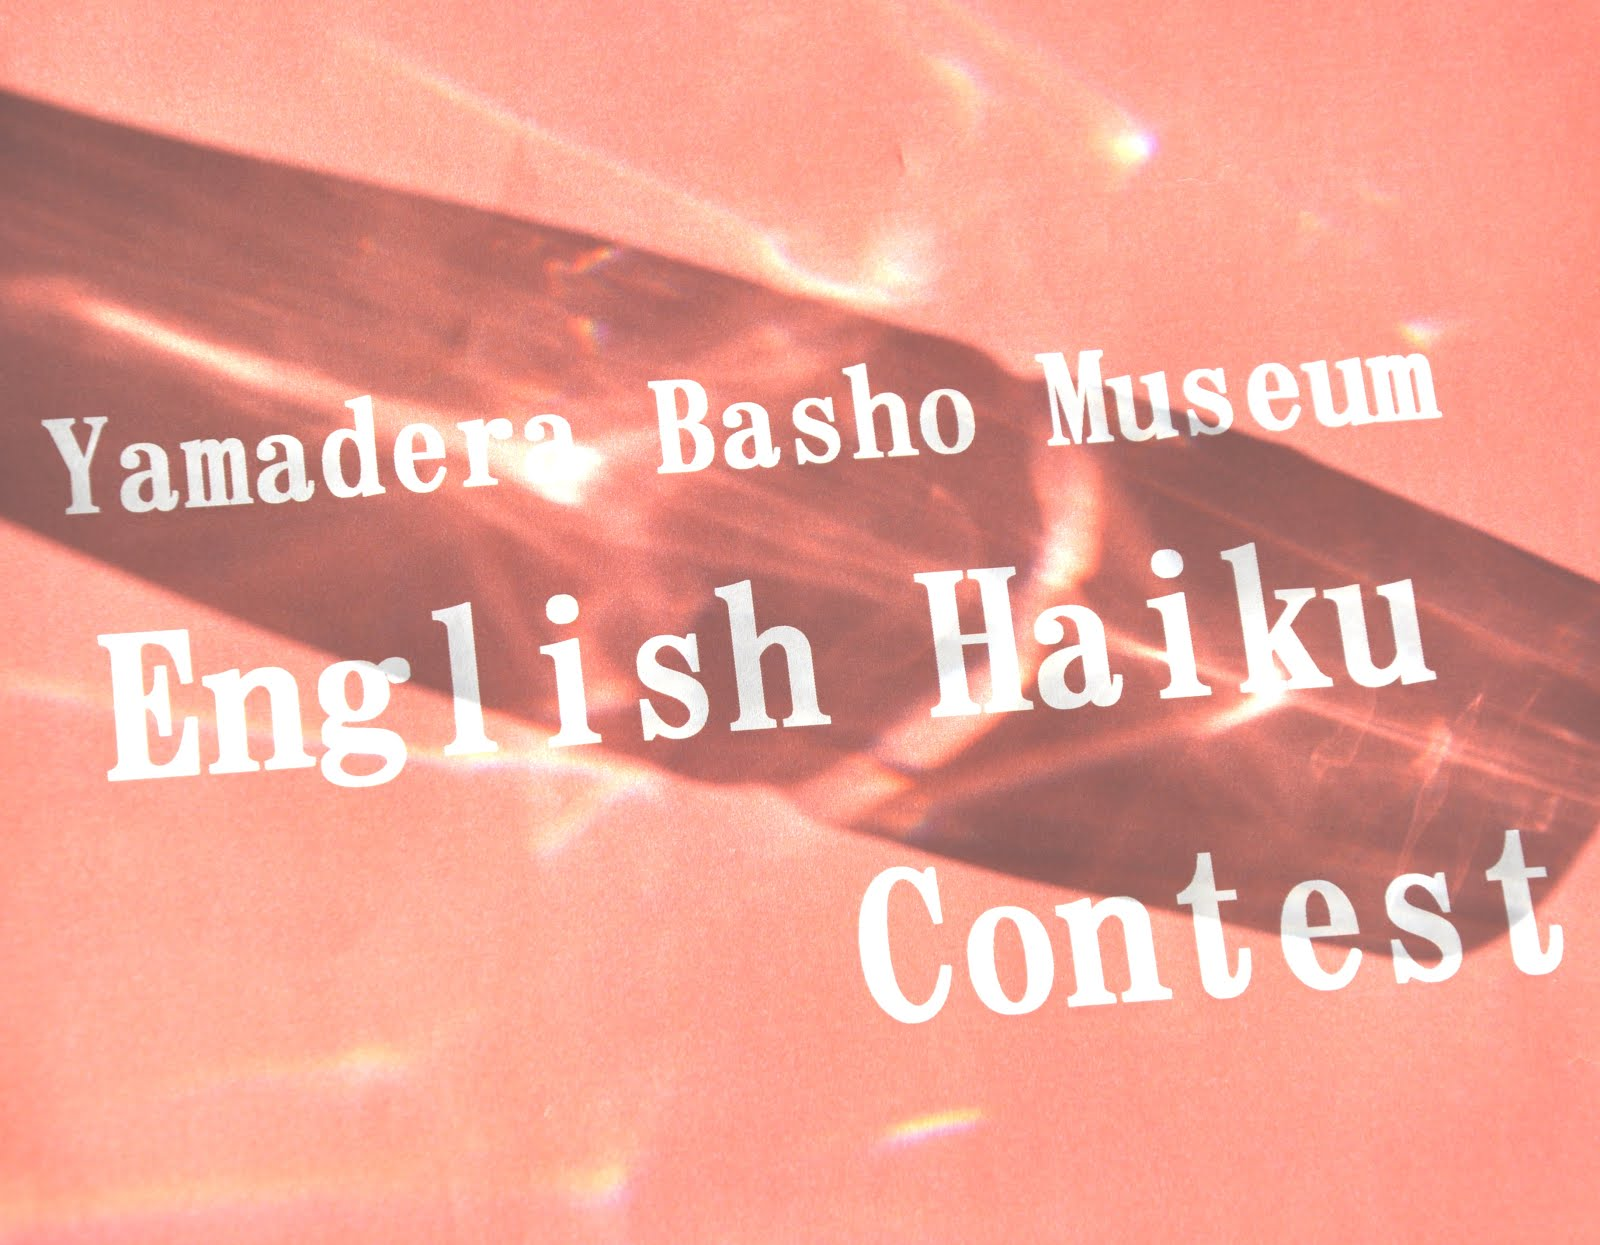 10th Yamadera Basho Museum Contest - JAPAN